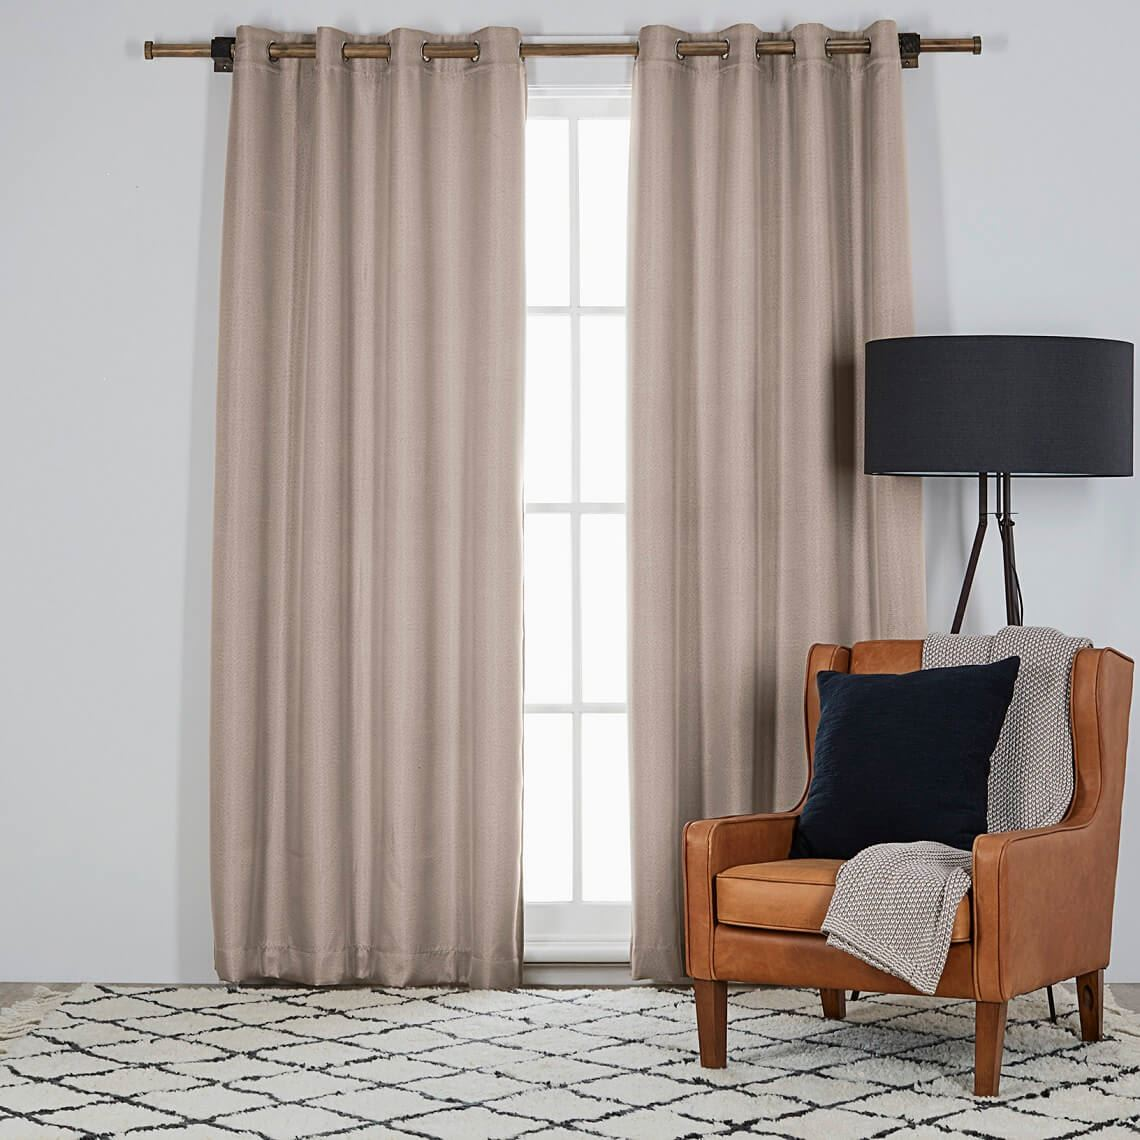 Harrison Room Darkening Eyelet Curtain Size W 135cm x D 0cm x H 230cm in Stone 100% Polyester Freedom by Freedom, a Curtains for sale on Style Sourcebook